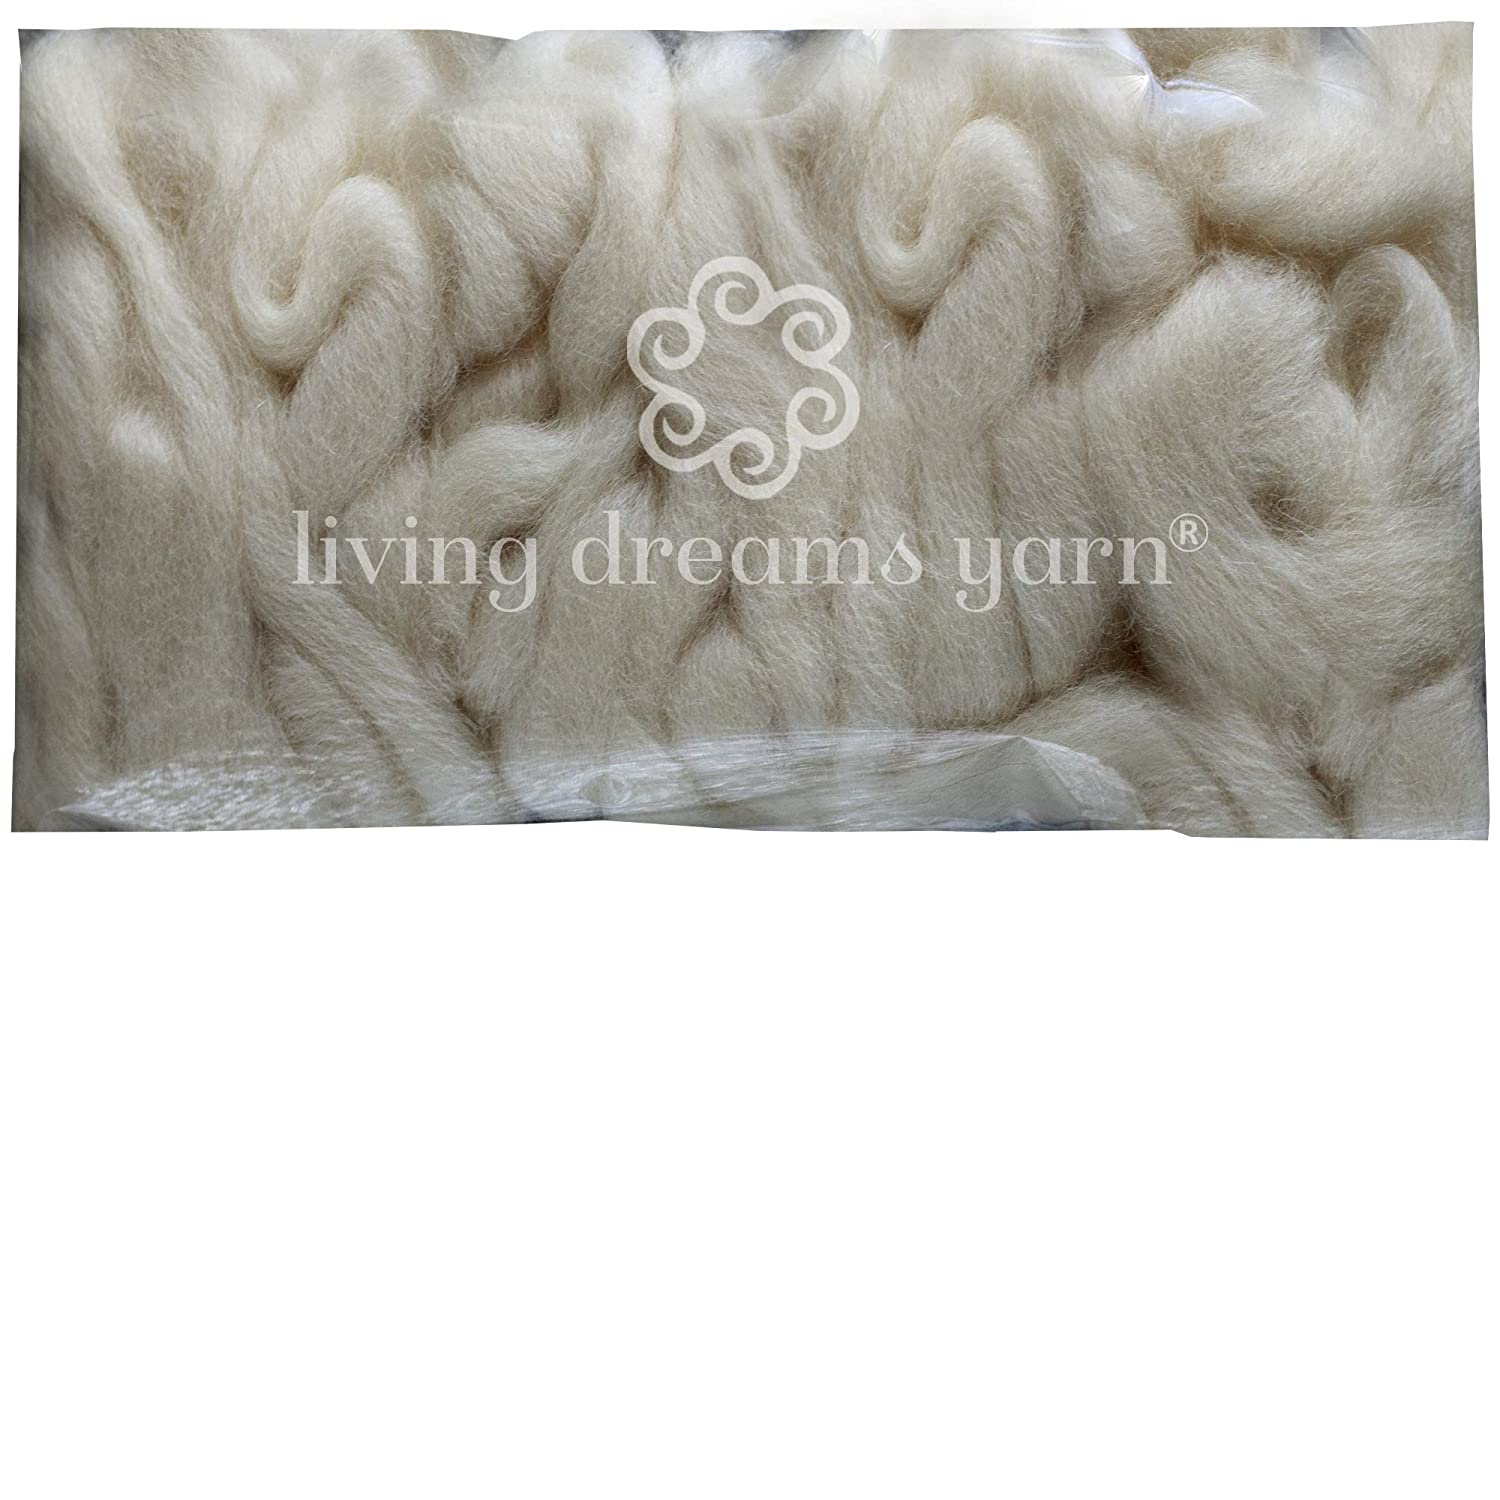 Wool Roving Craft Fiber. Natural Soft BFL Wool Top. Pre-drafted for easy Hand Spinning, Needle Felting, Wet Felting, Weaving, Embellishments, and Felted Soap. 1 Ounce, Natural Living Dreams Yarn